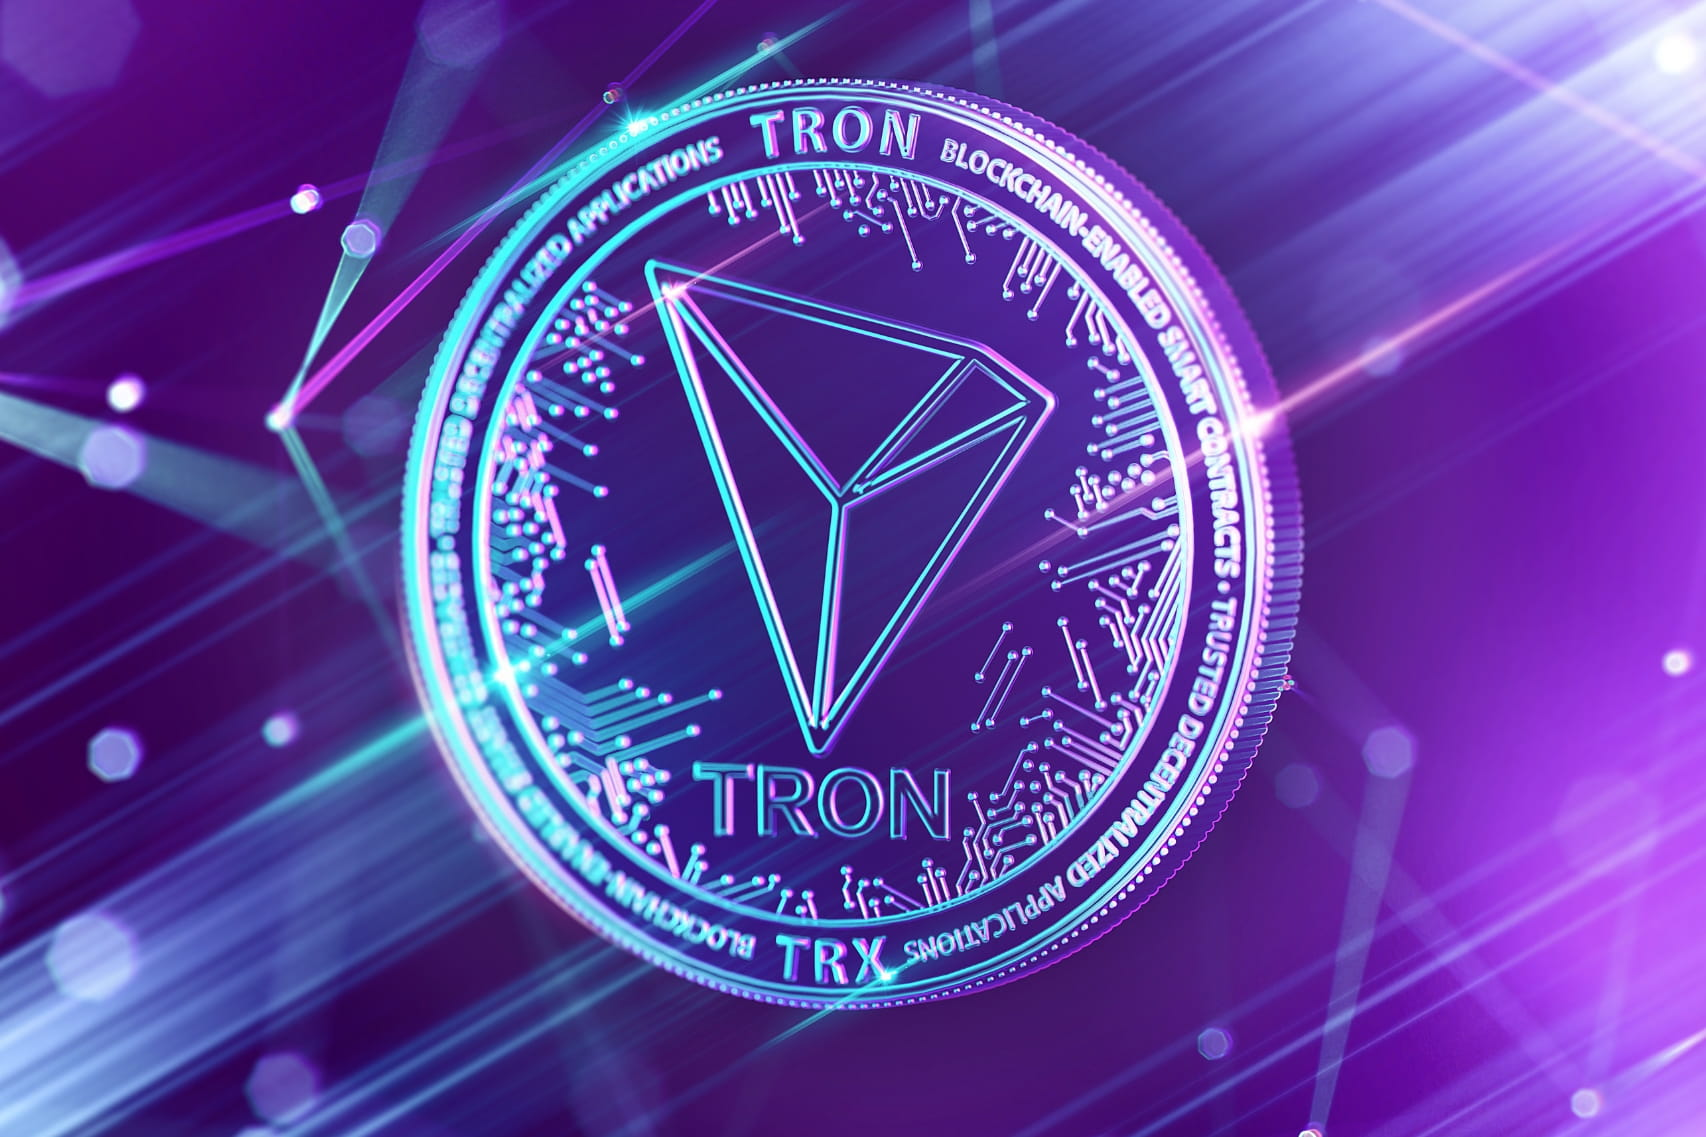 TRON (TRX) is Now the Number 1 Dapp Platform